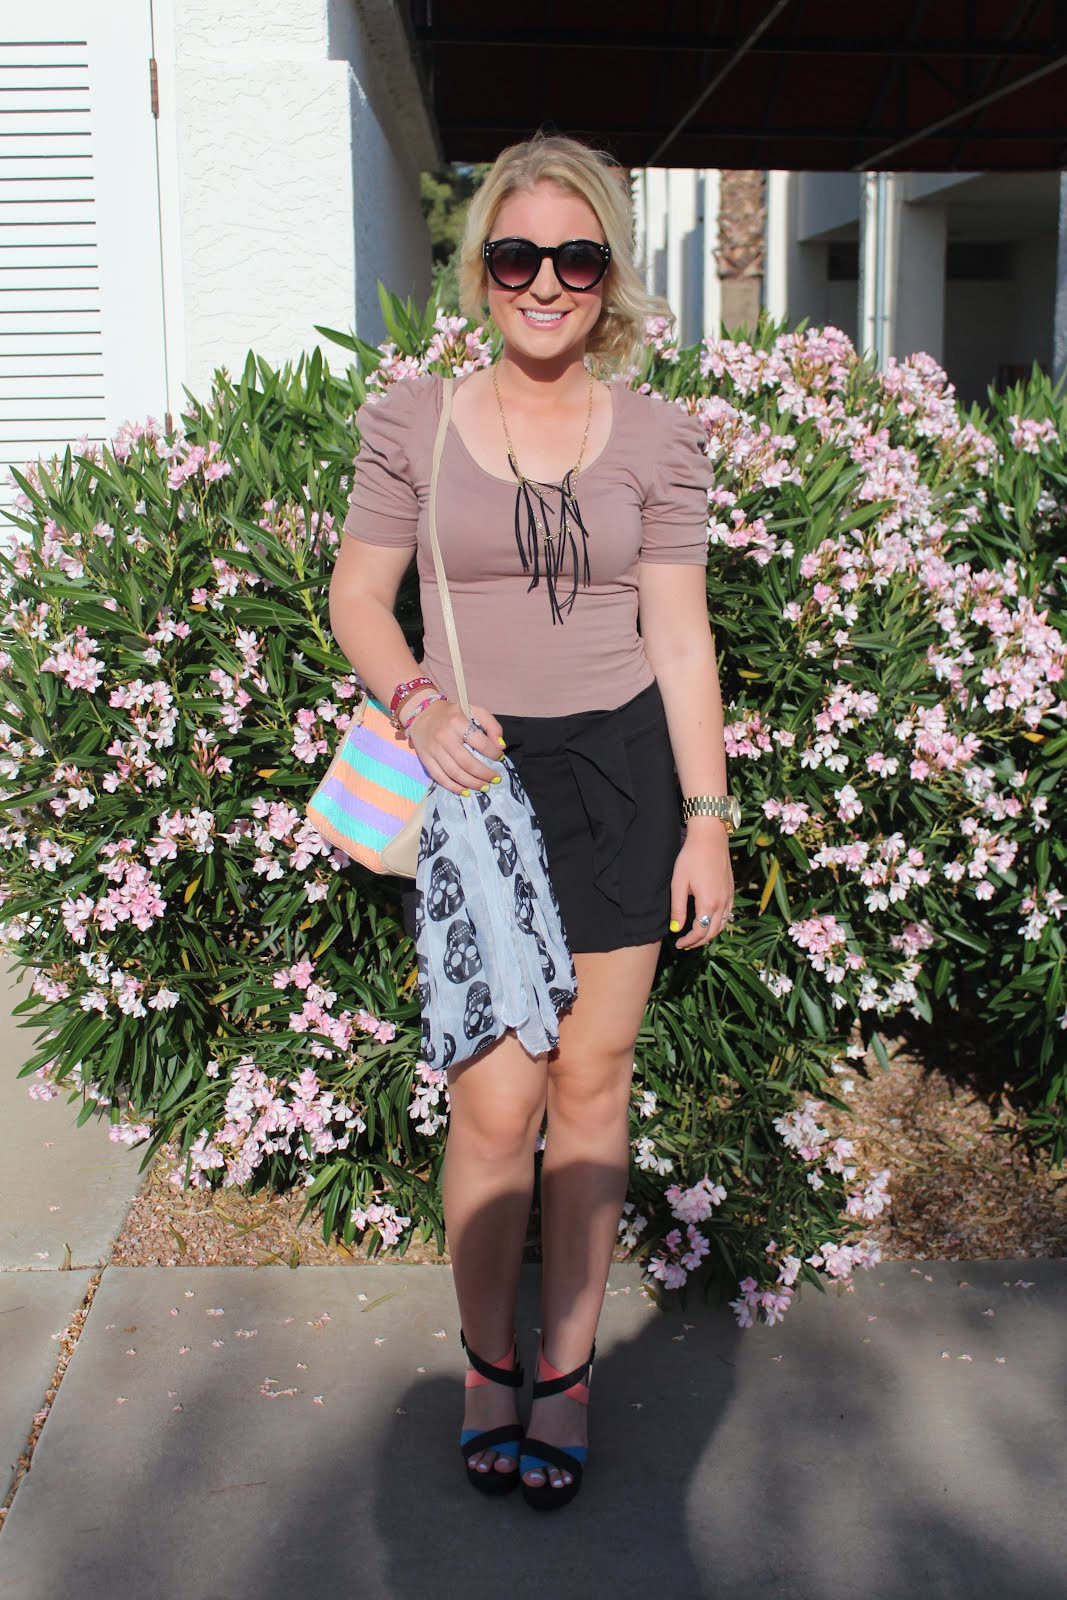 ... shirt Love Culture, DIY fringe necklace, DIY painted purse, heels  Plato's Closet {originally from Charlotte Russe}, sunnies Buffalo Exchange,  scarf Q, ...